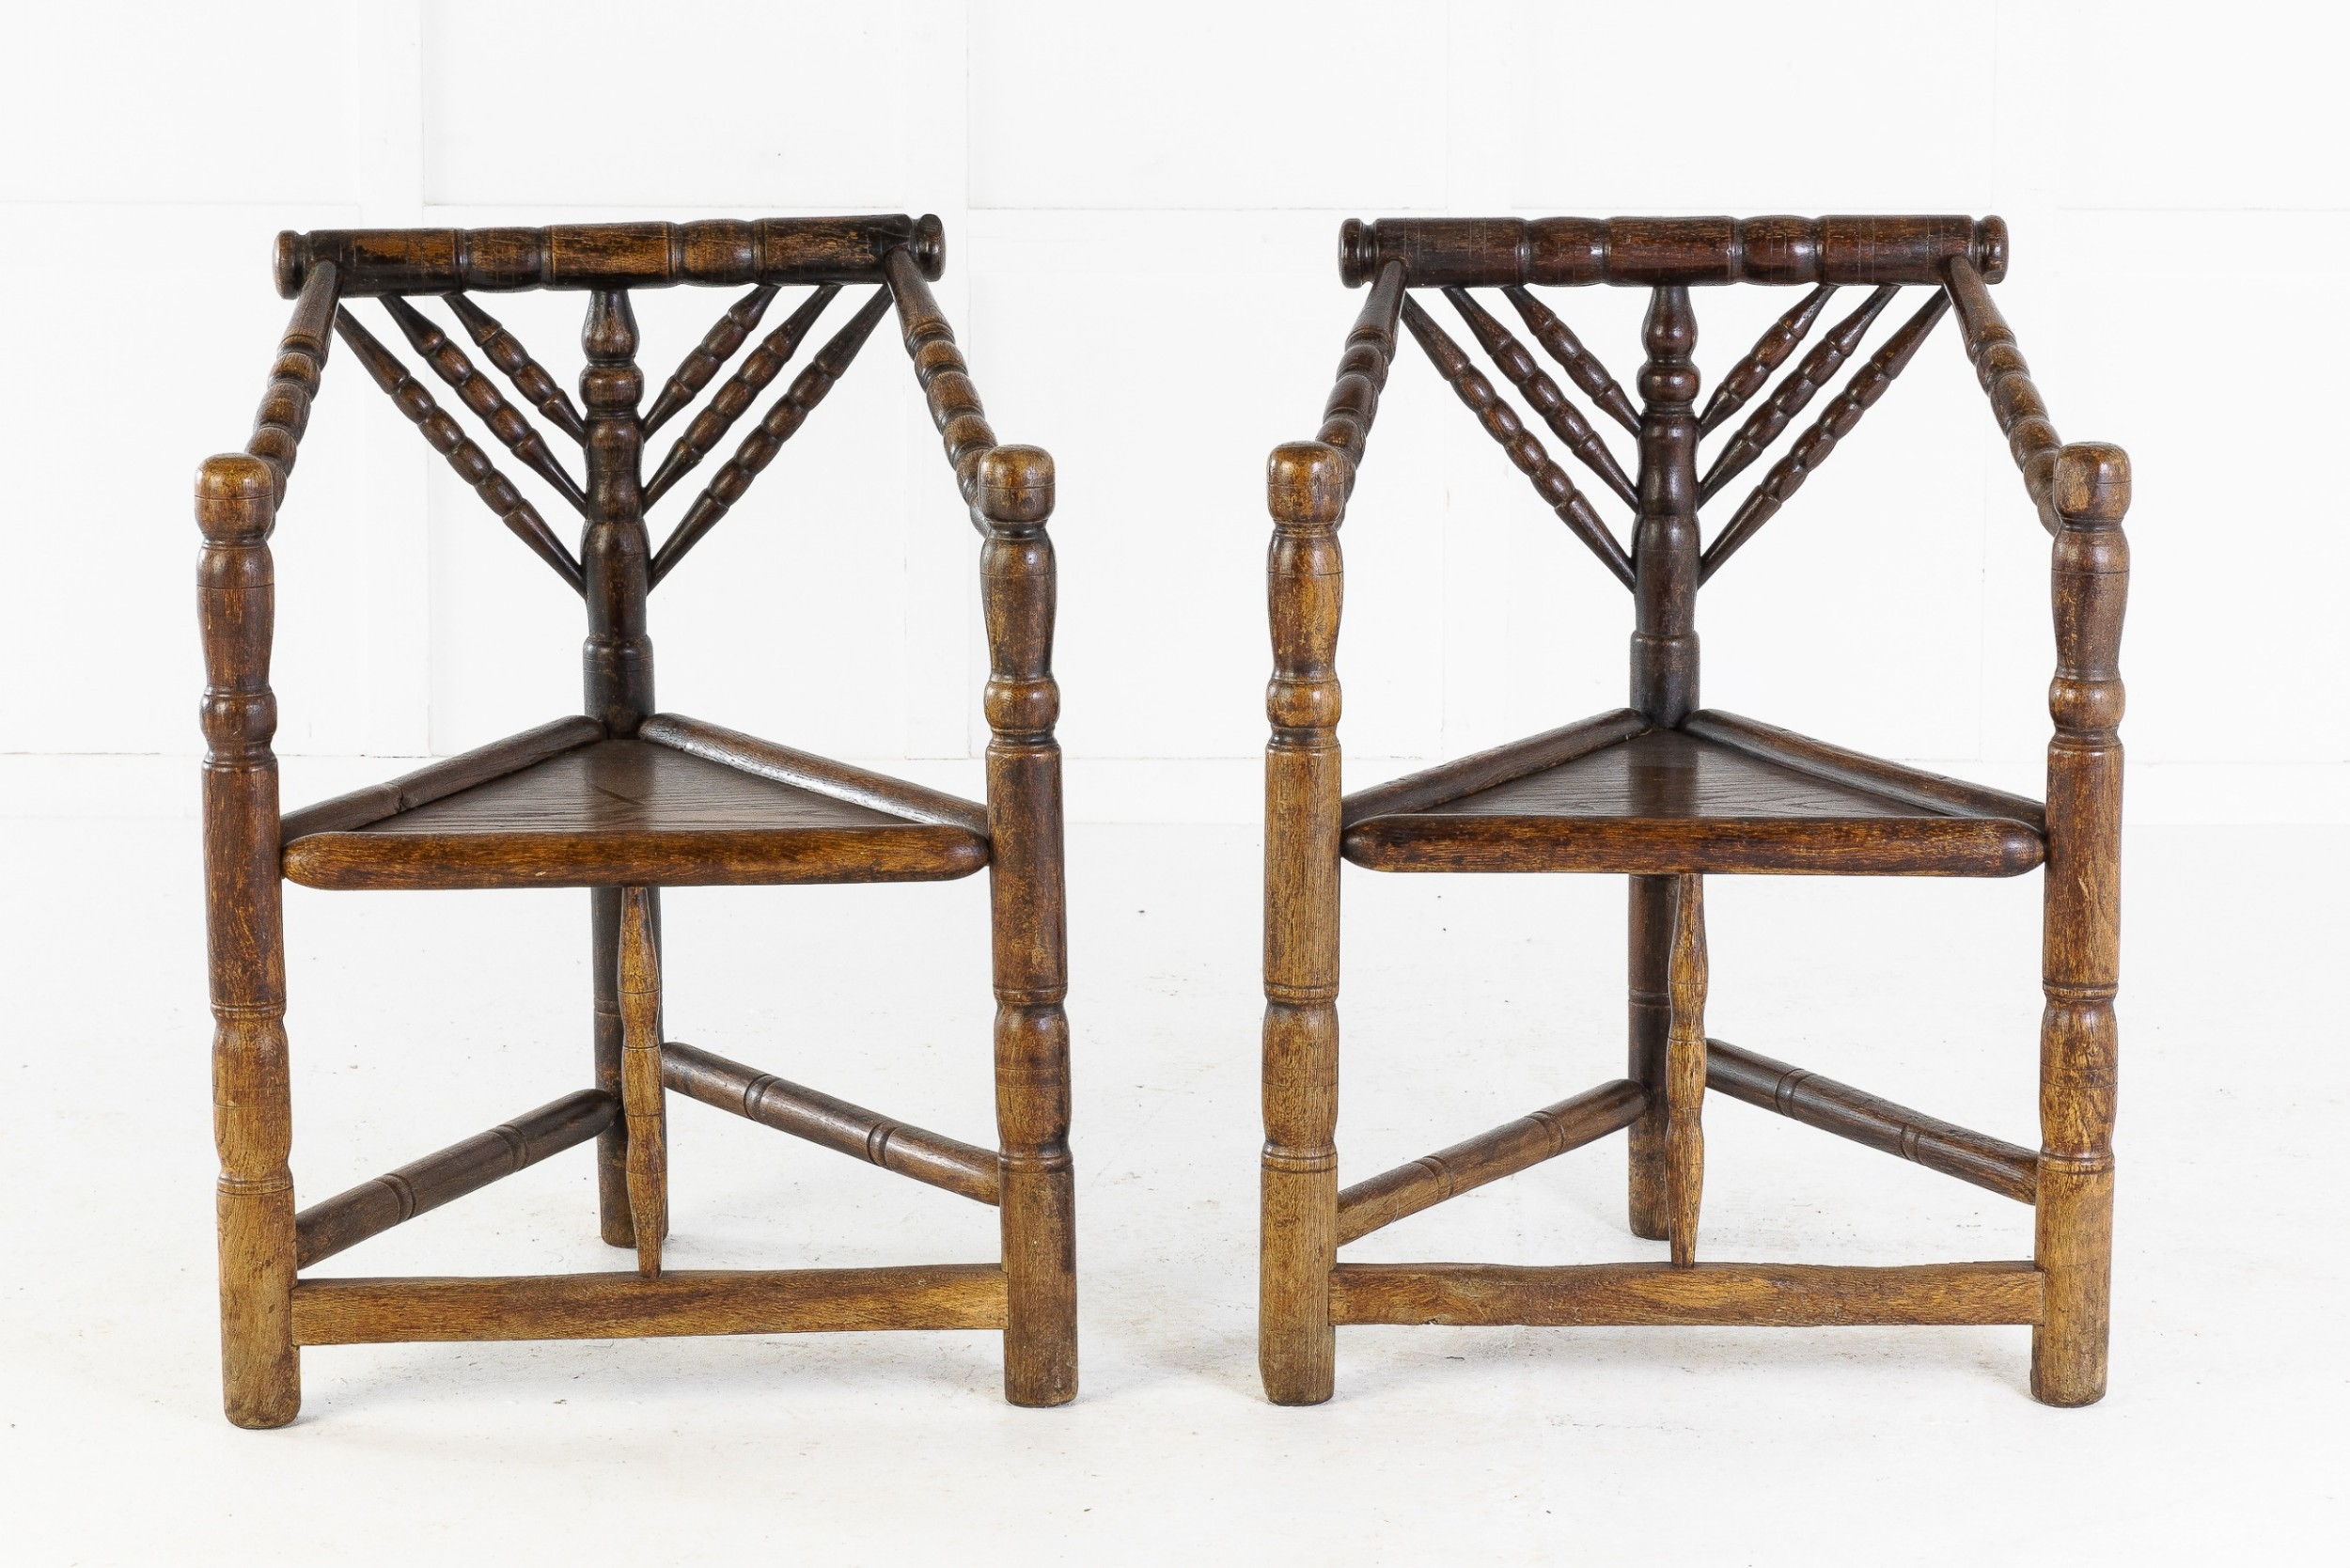 19th century pair of turners' chairs